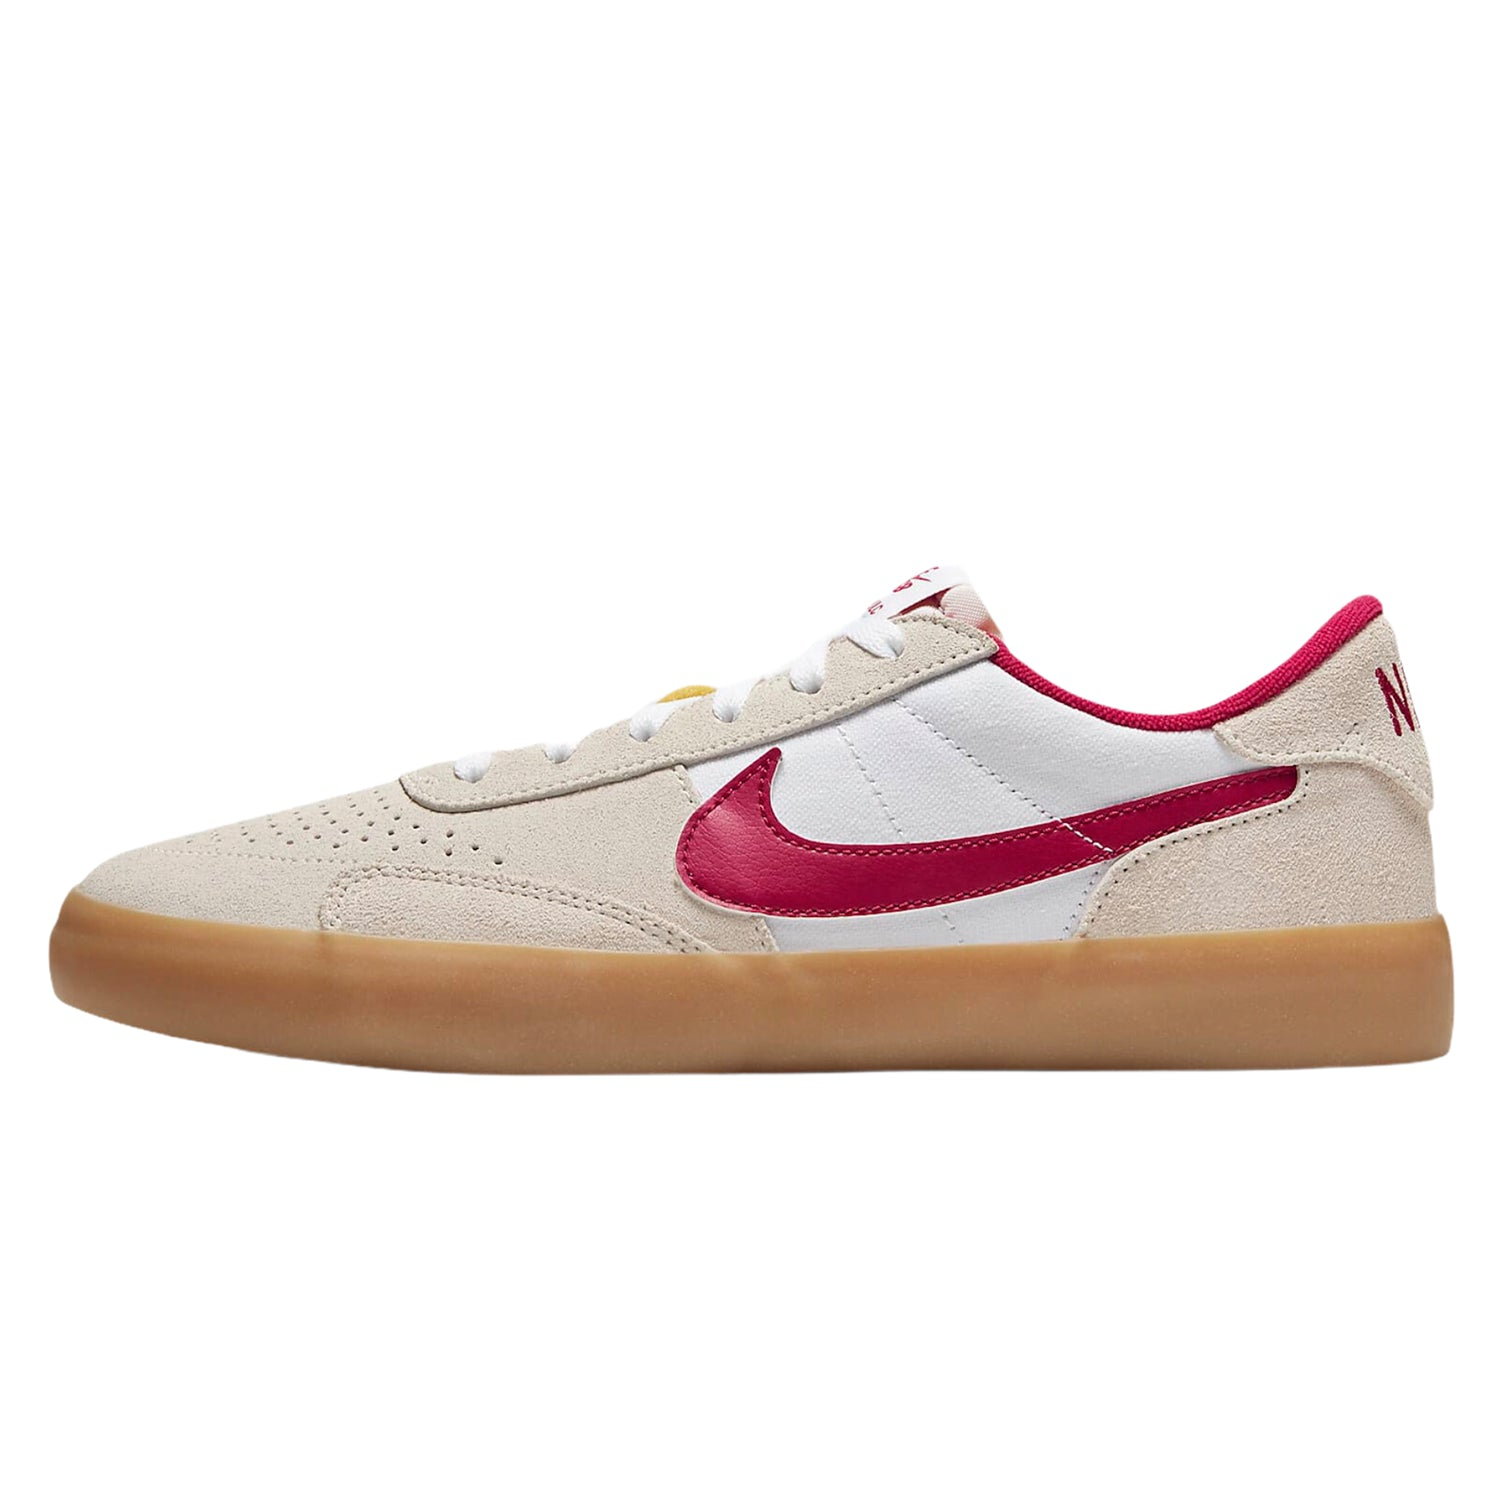 Nike SB Heritage Vulc Summit White/Gum Light Brown/Red